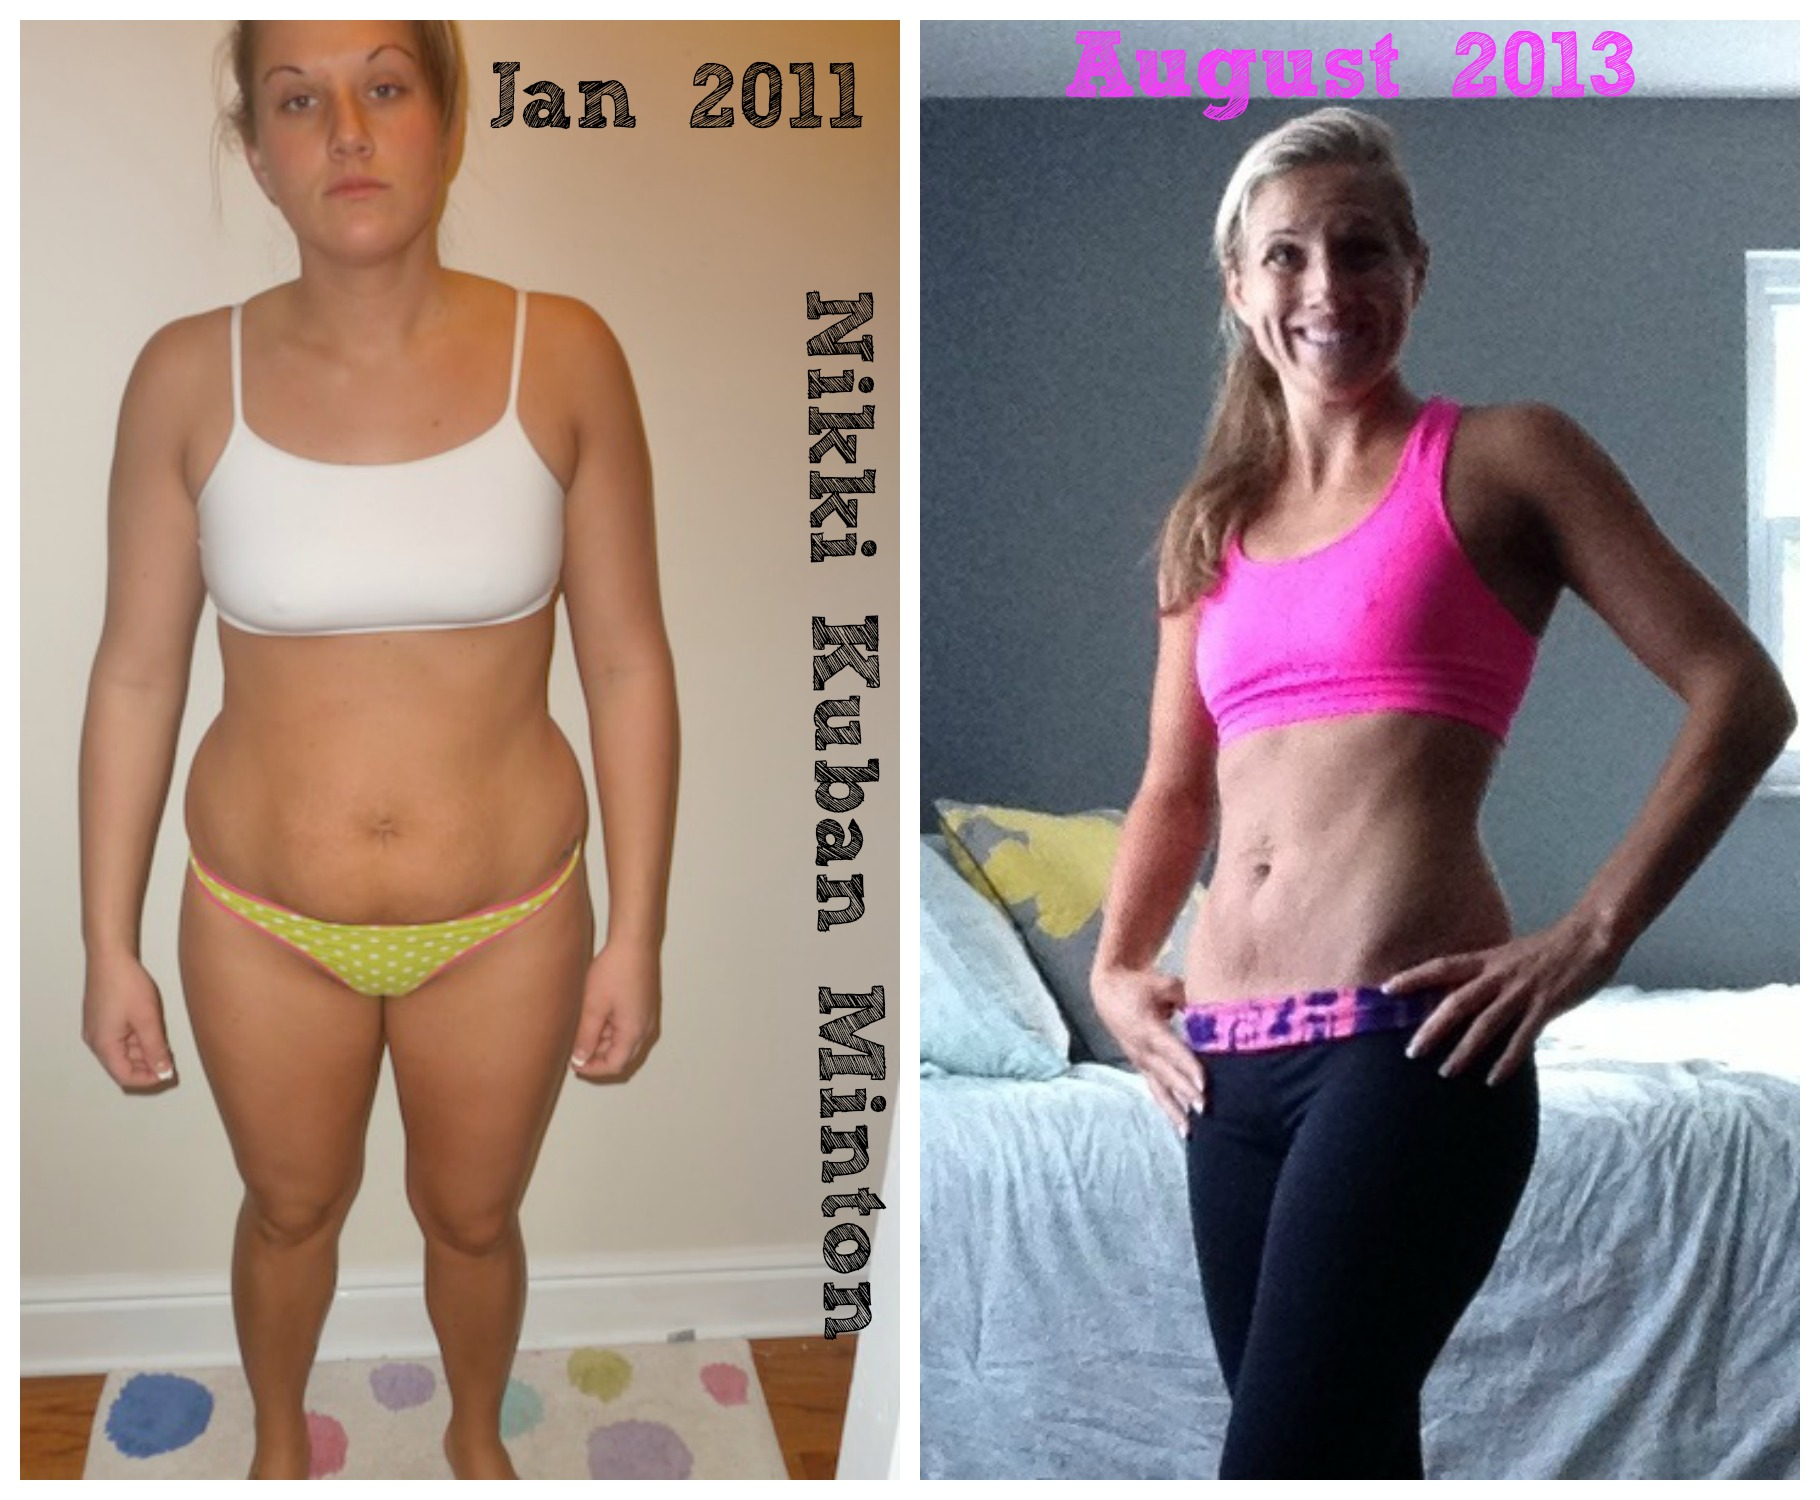 beachbody challenge, challenge yourself, clean eating, eat clean, motivation, support, new years resolution, inspiration, help, weight loss,discipline, start, positive thinking , progress, transformation, me, selfie